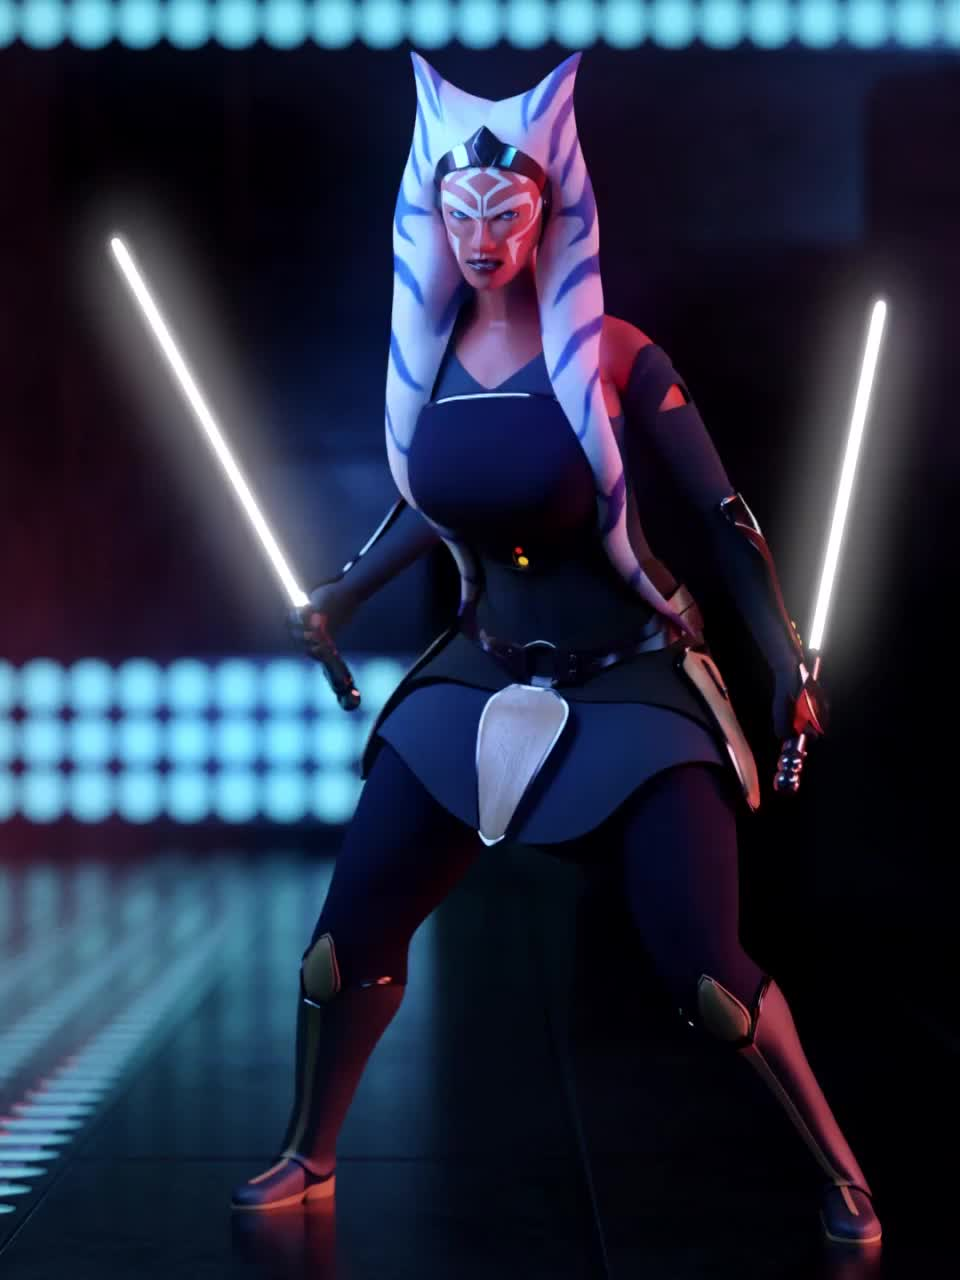 I made an Ahsoka idle animation